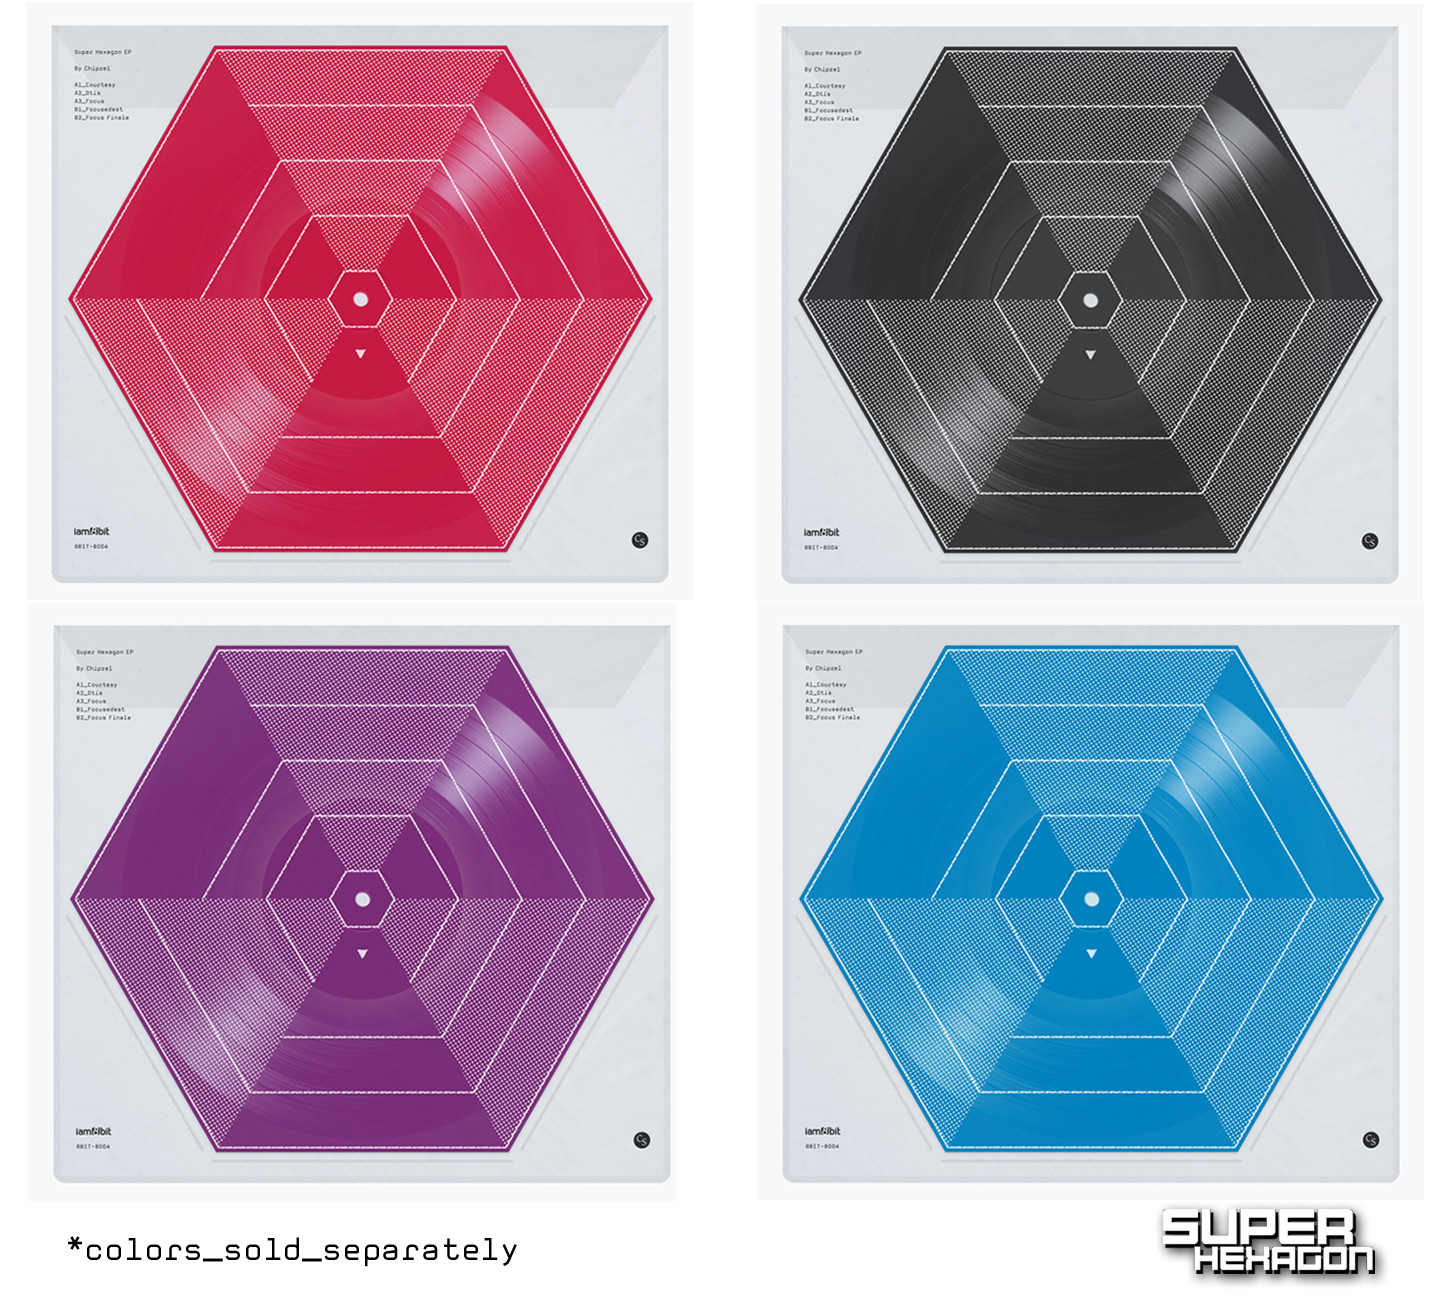 An Ep Featuring Music From Super Hexagon Is Being Released